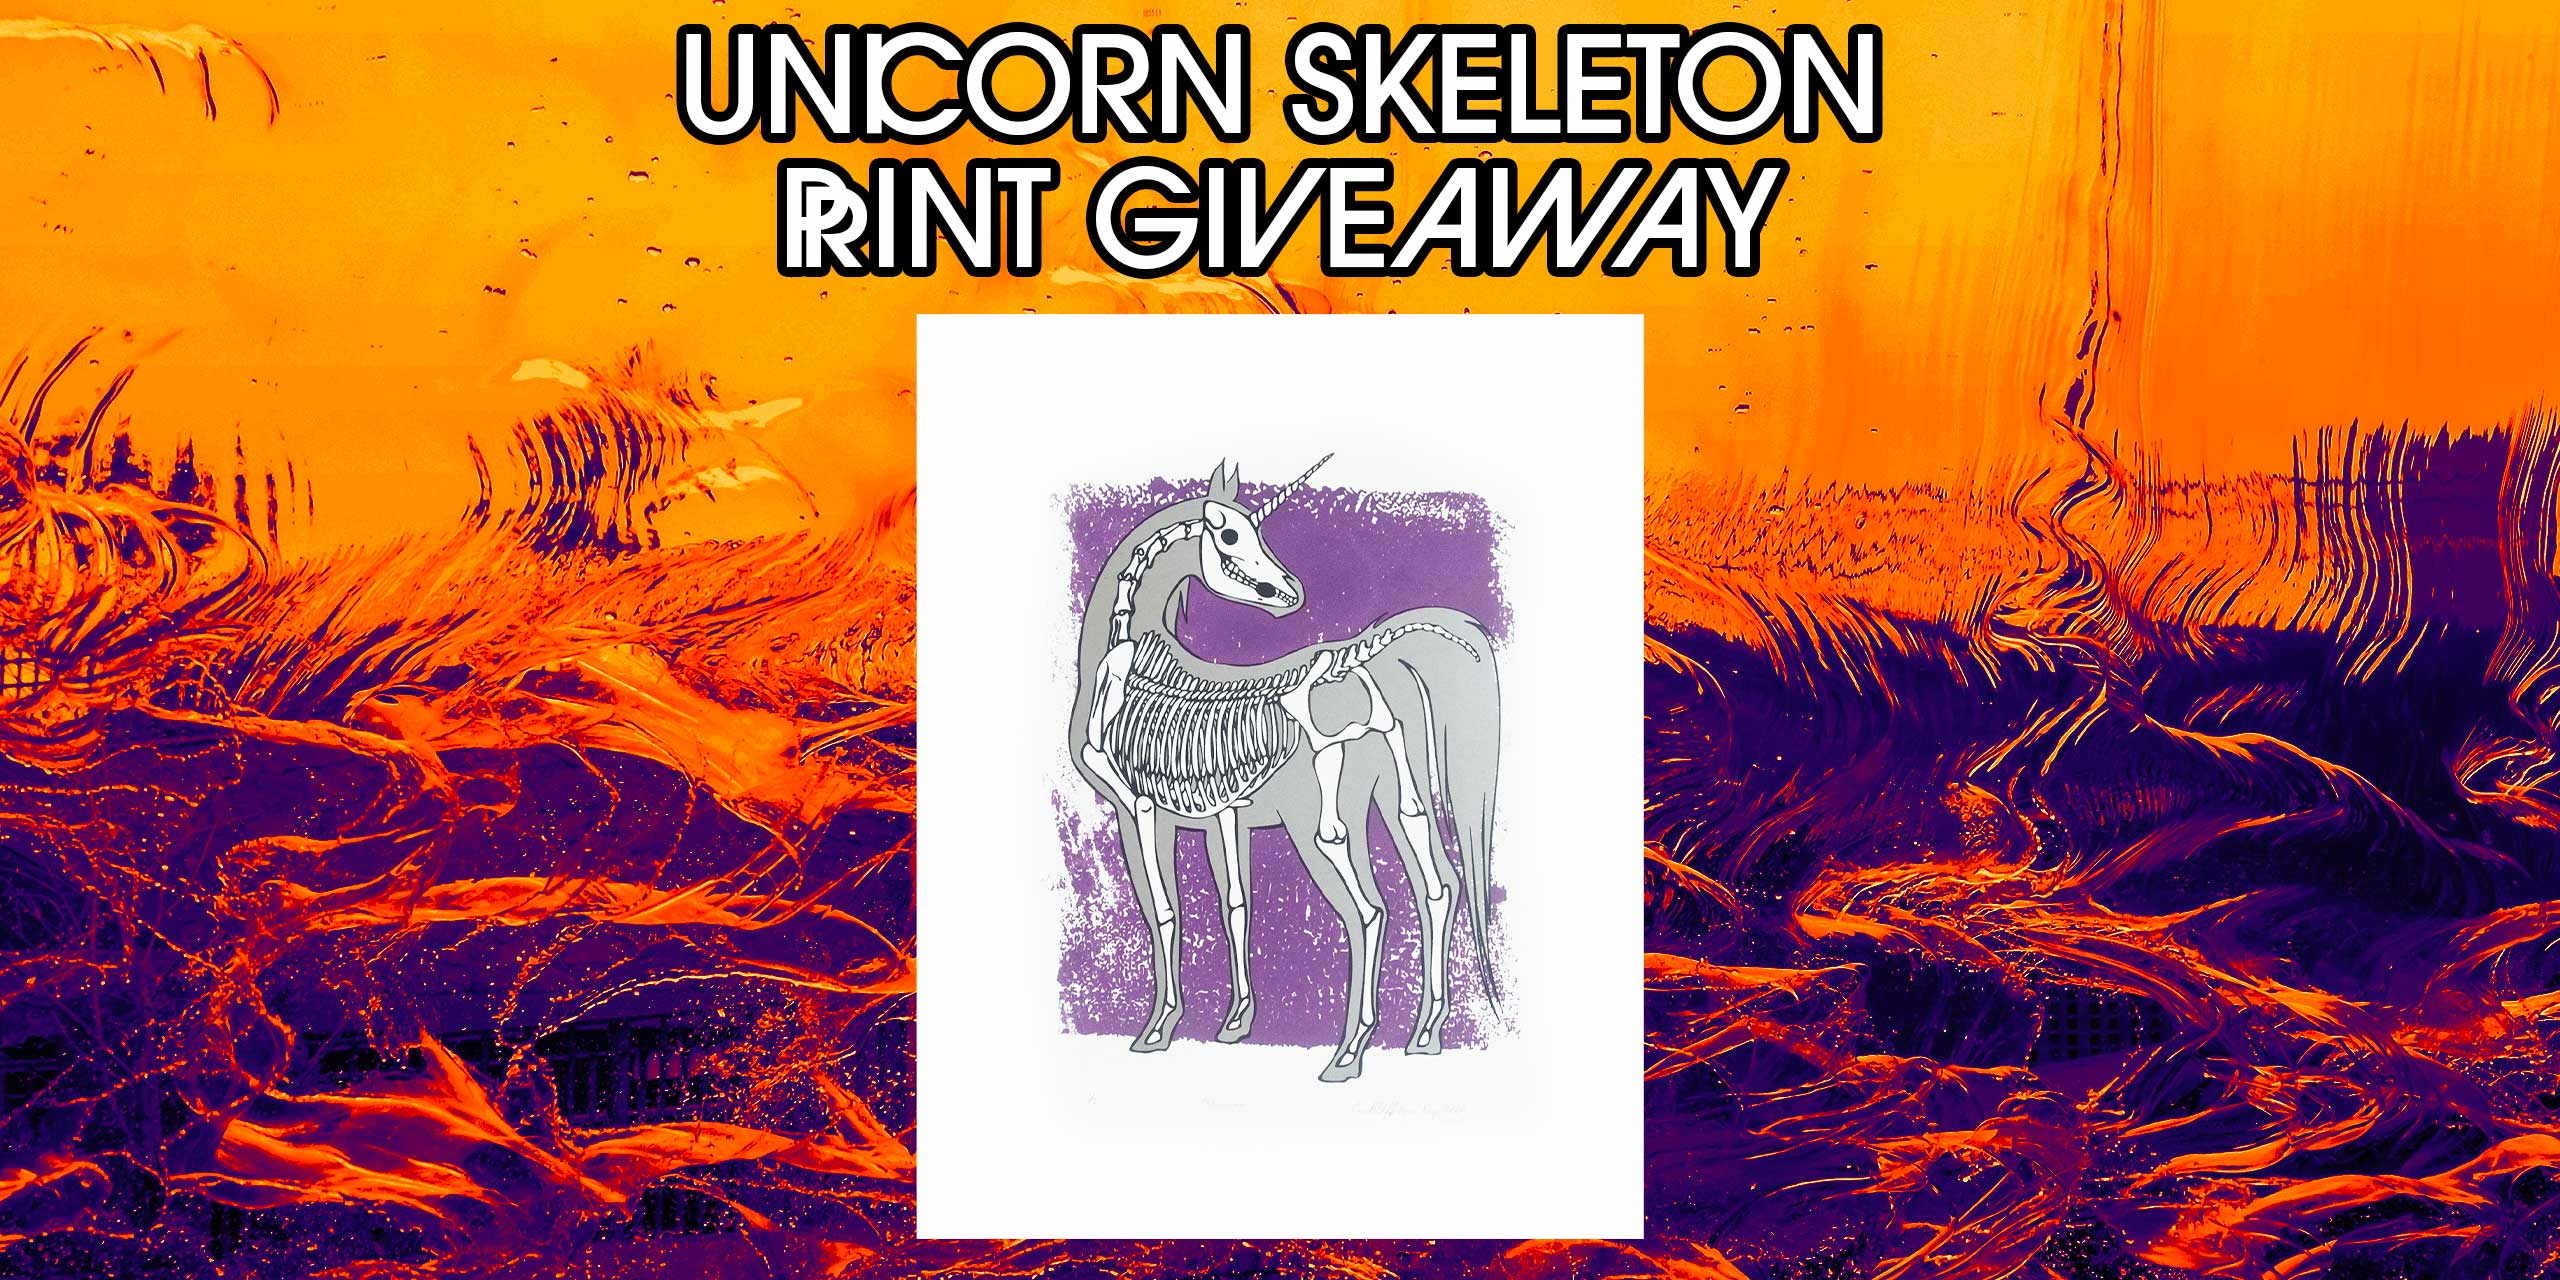 unicorn skeleton print giveaway graphic